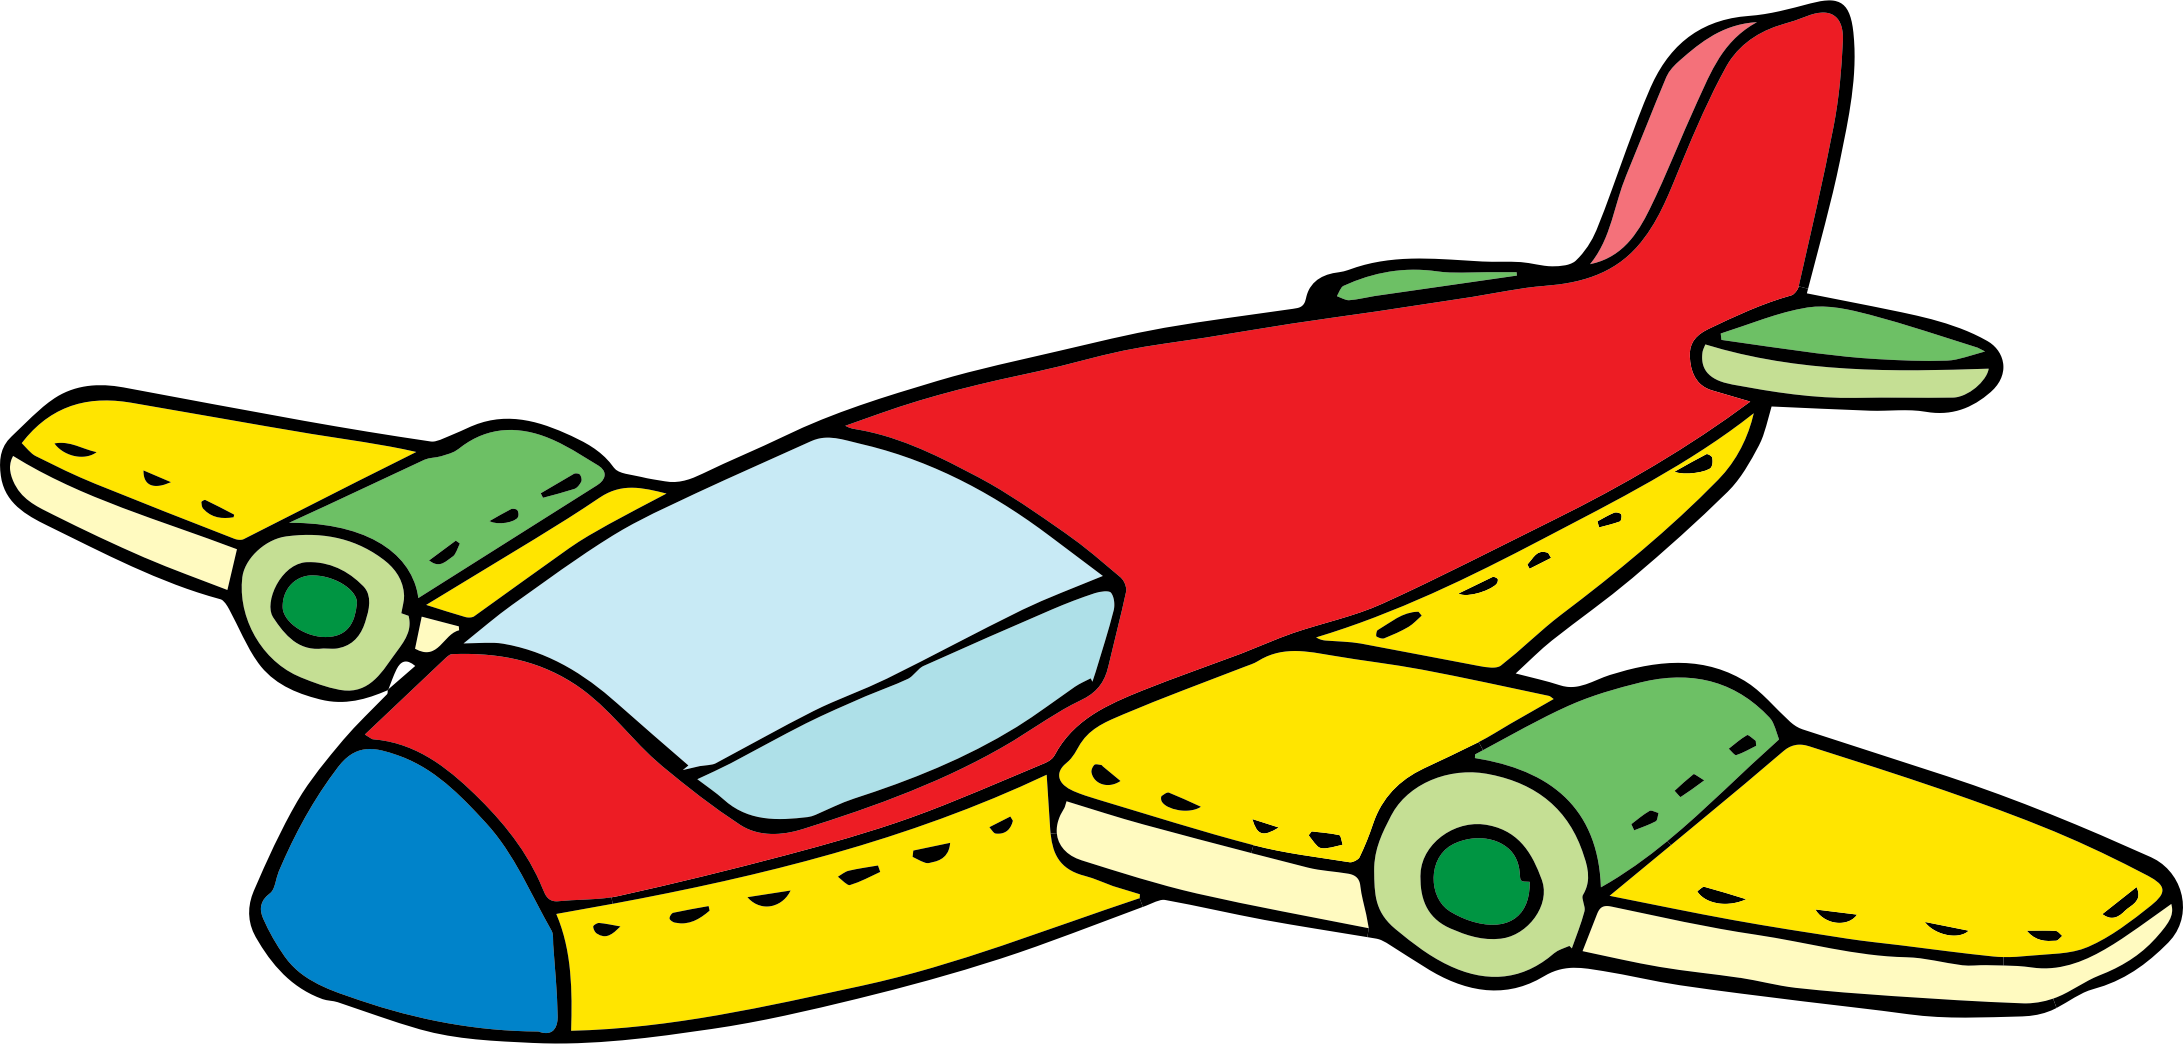 Cartoon Airplane Image | Free download on ClipArtMag